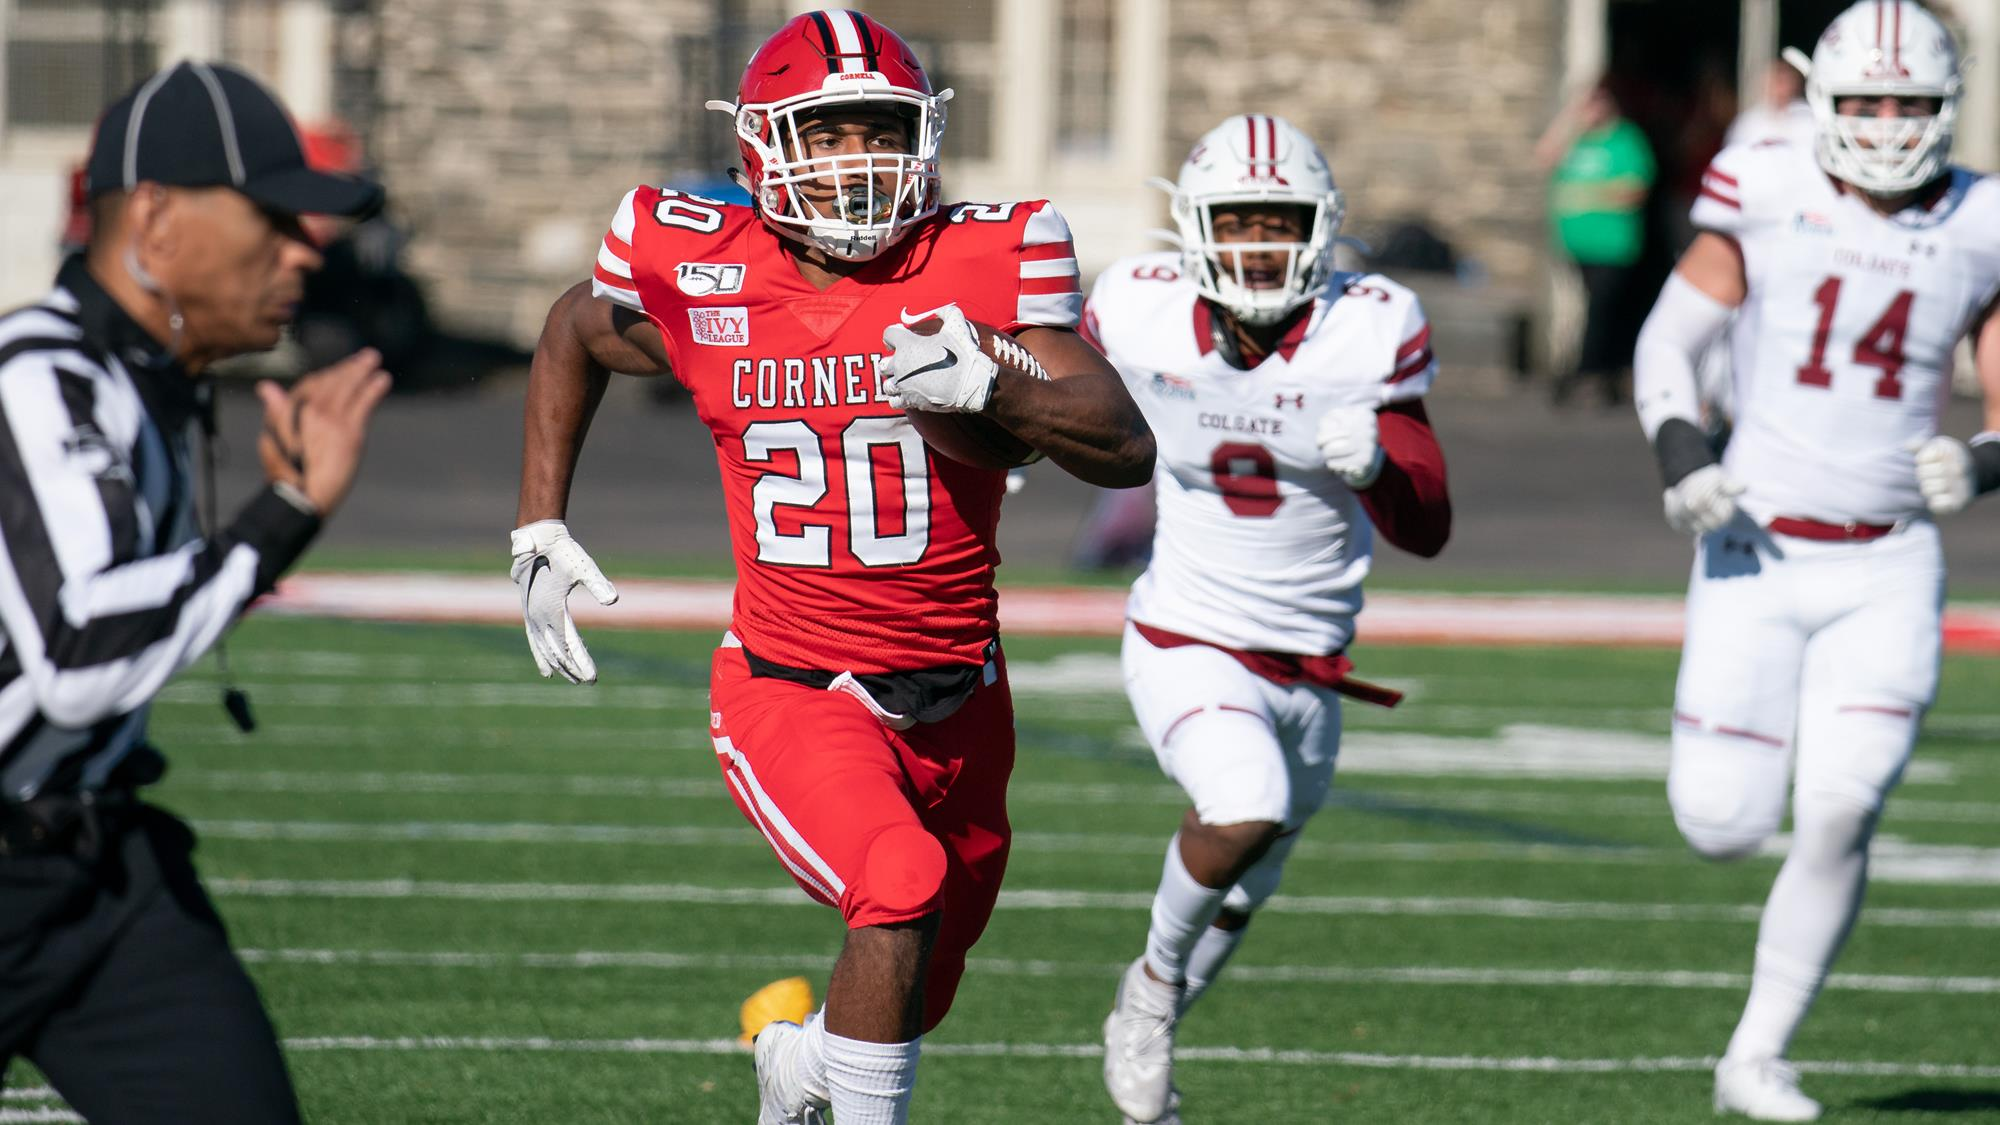 Harold Coles rushes up the sideline during the first half of the Cornell football team's non-league game against Colgate on Oct. 19, 2019 at Schoellkopf Field in Ithaca, N.Y. (Dave Burbank/Cornell Athletics)